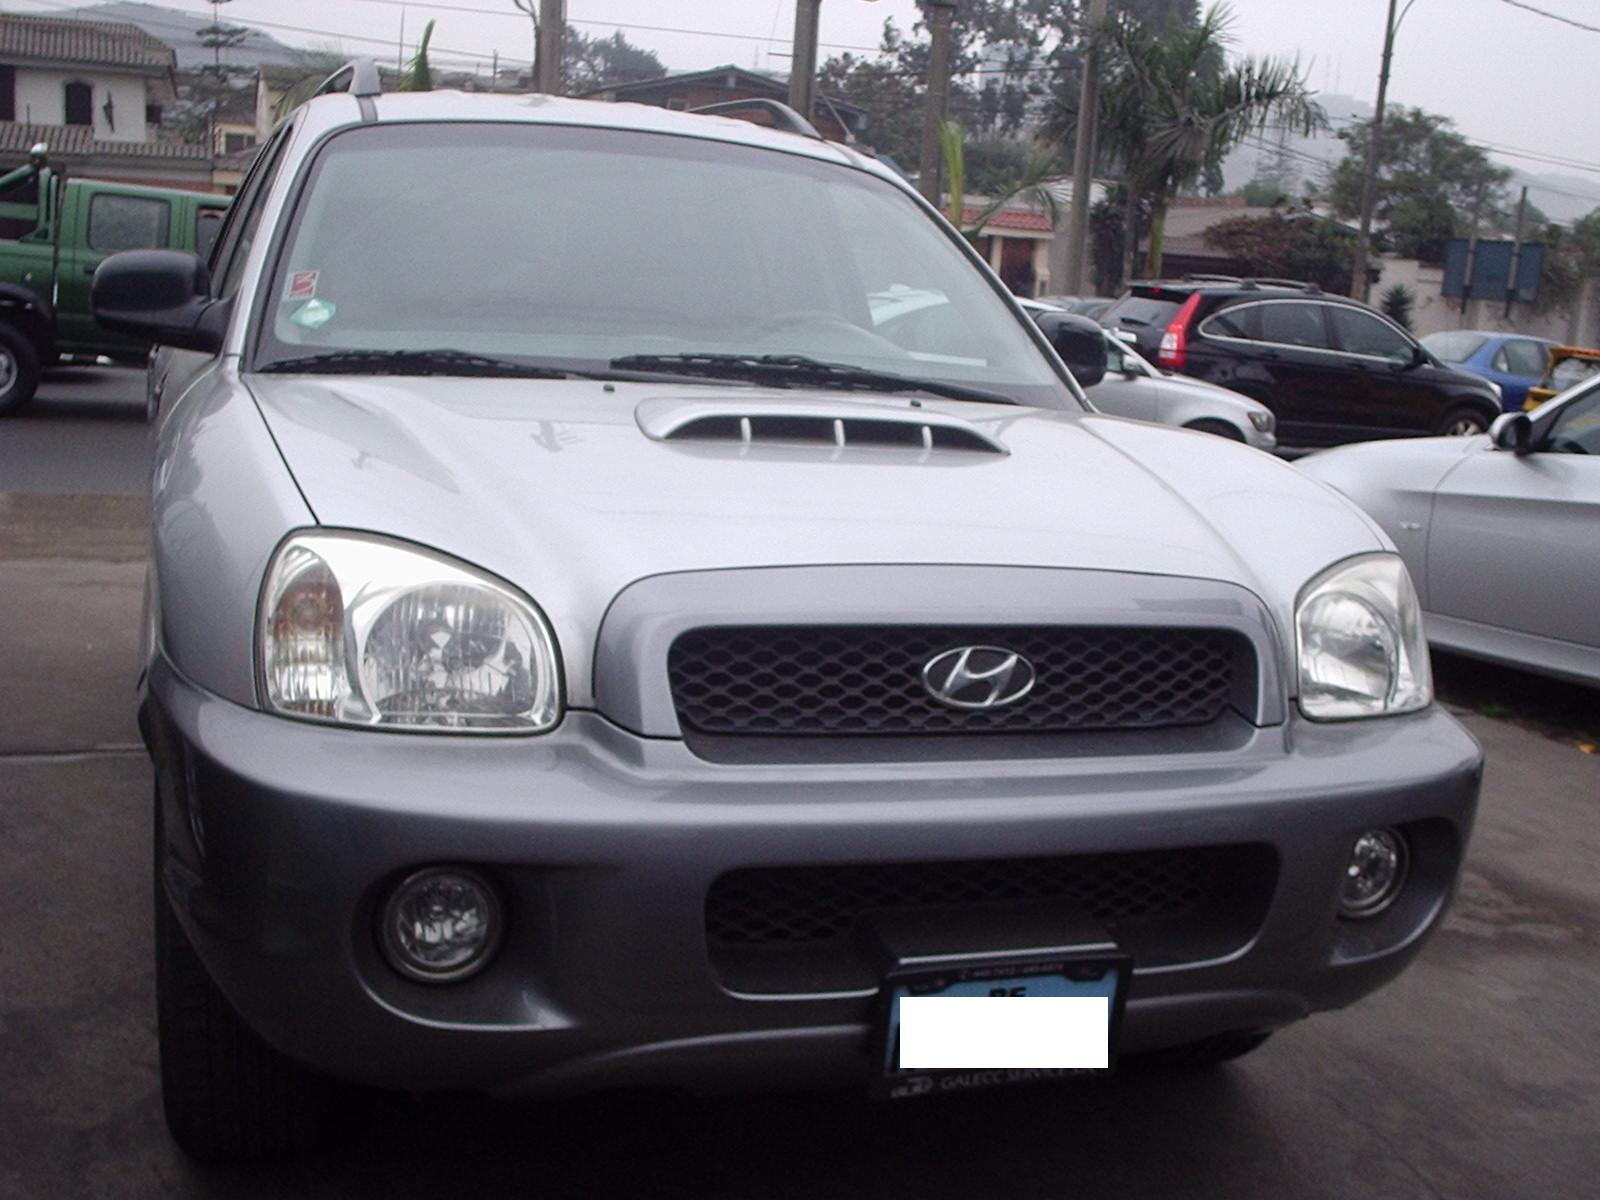 2003 Hyundai Santa Fe Information And Photos Momentcar